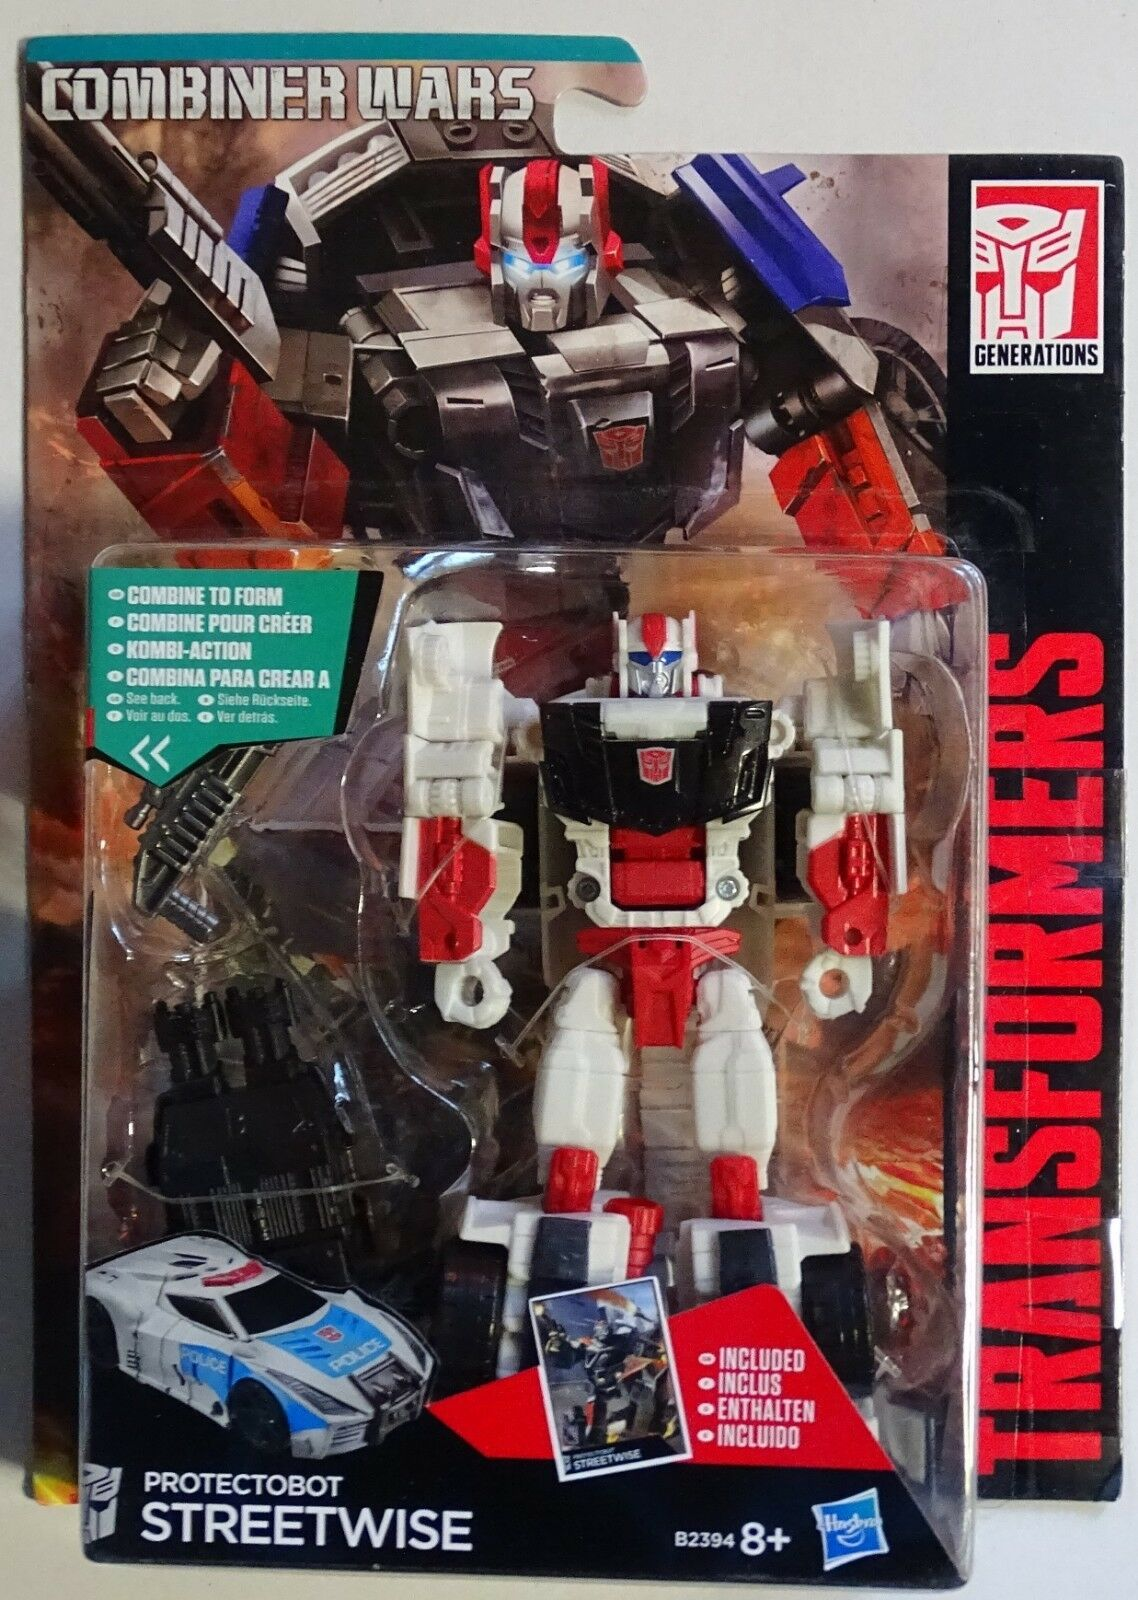 HASBRO® B2394 Transformers Generations Deluxe Deluxe Deluxe Protectobot Streetwise 1693a2